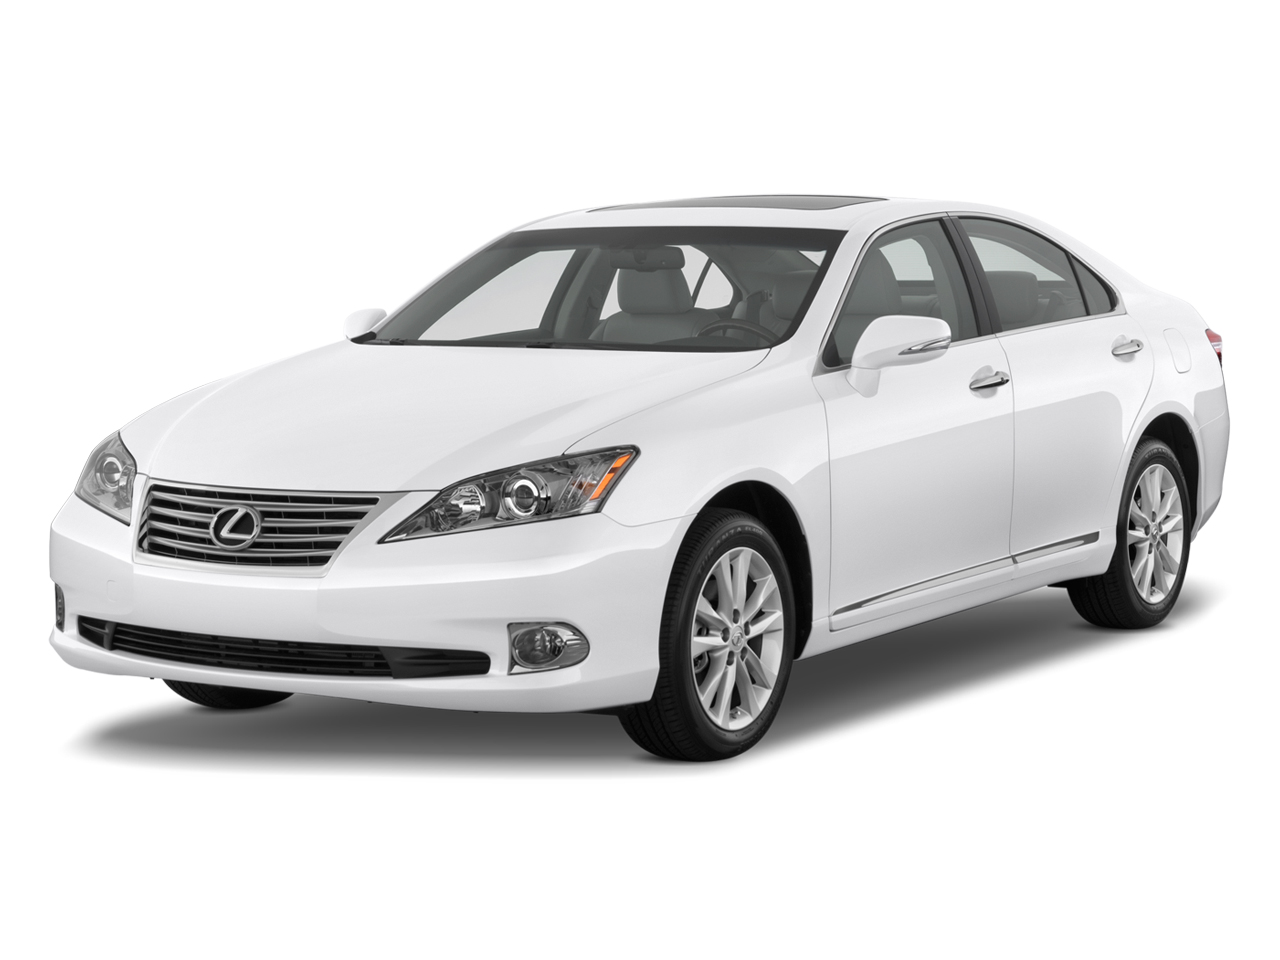 2011 lexus es 350 review and news motorauthority. Black Bedroom Furniture Sets. Home Design Ideas